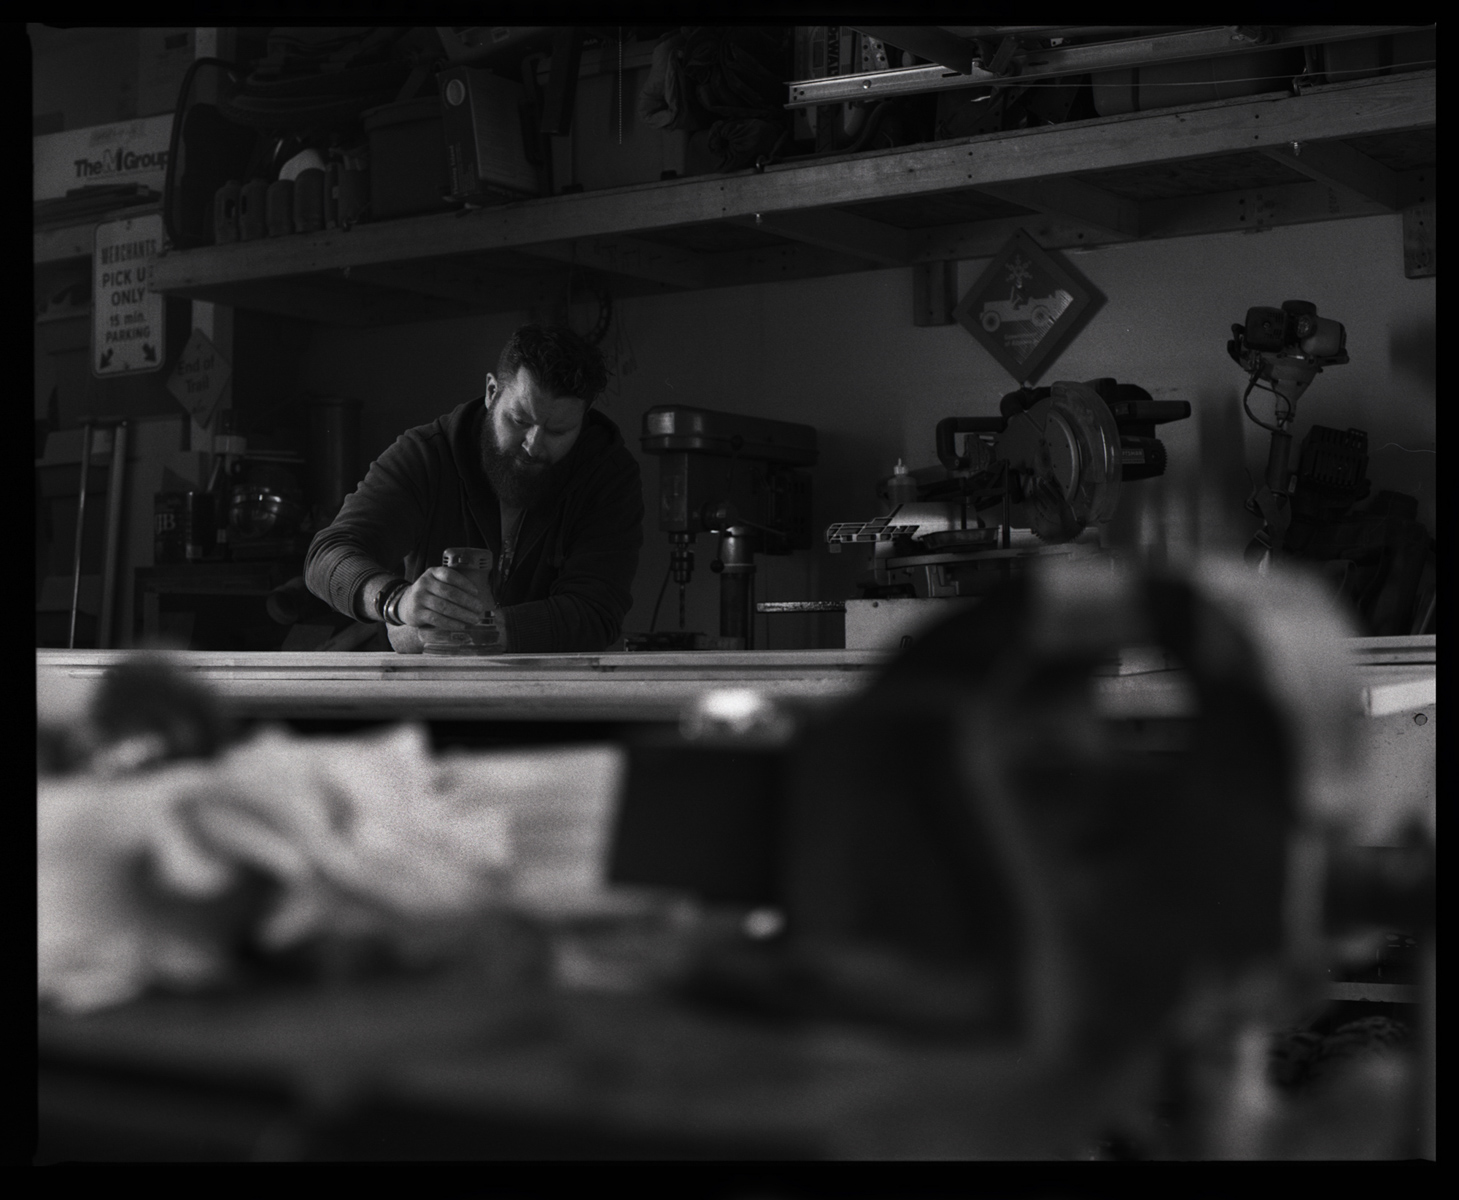 Woodworker - ILFORD HP5 PLUS. I wanted a dirty foreground to bury Simon in his work. I loved the way his busy workshop framed him within his task at hand.